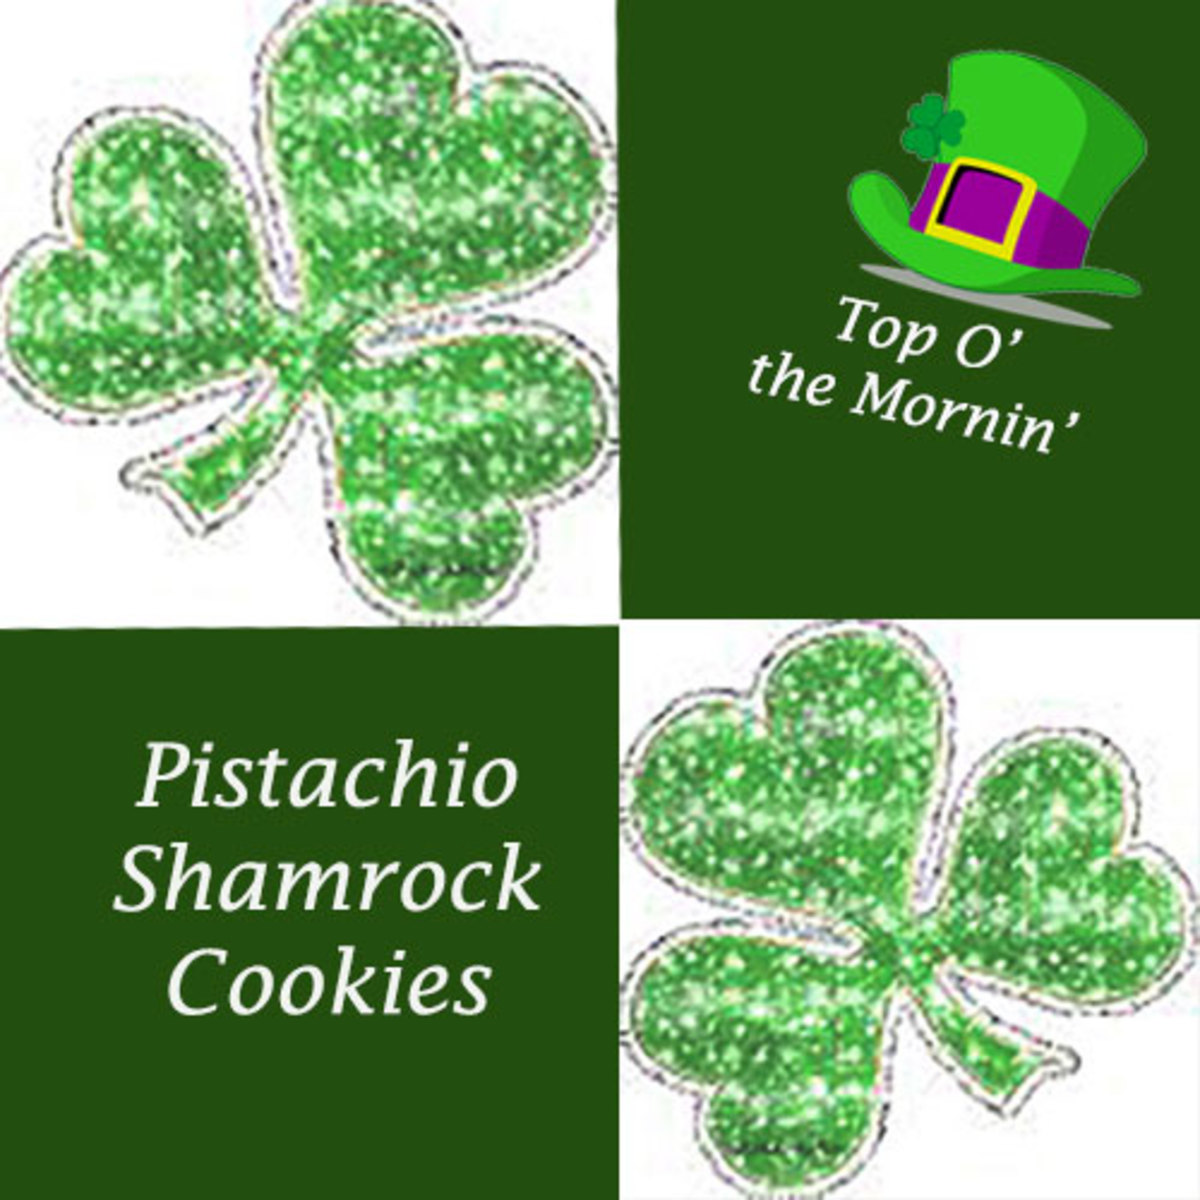 Are you looking for a festive St. Patrick's Day cookie recipe?